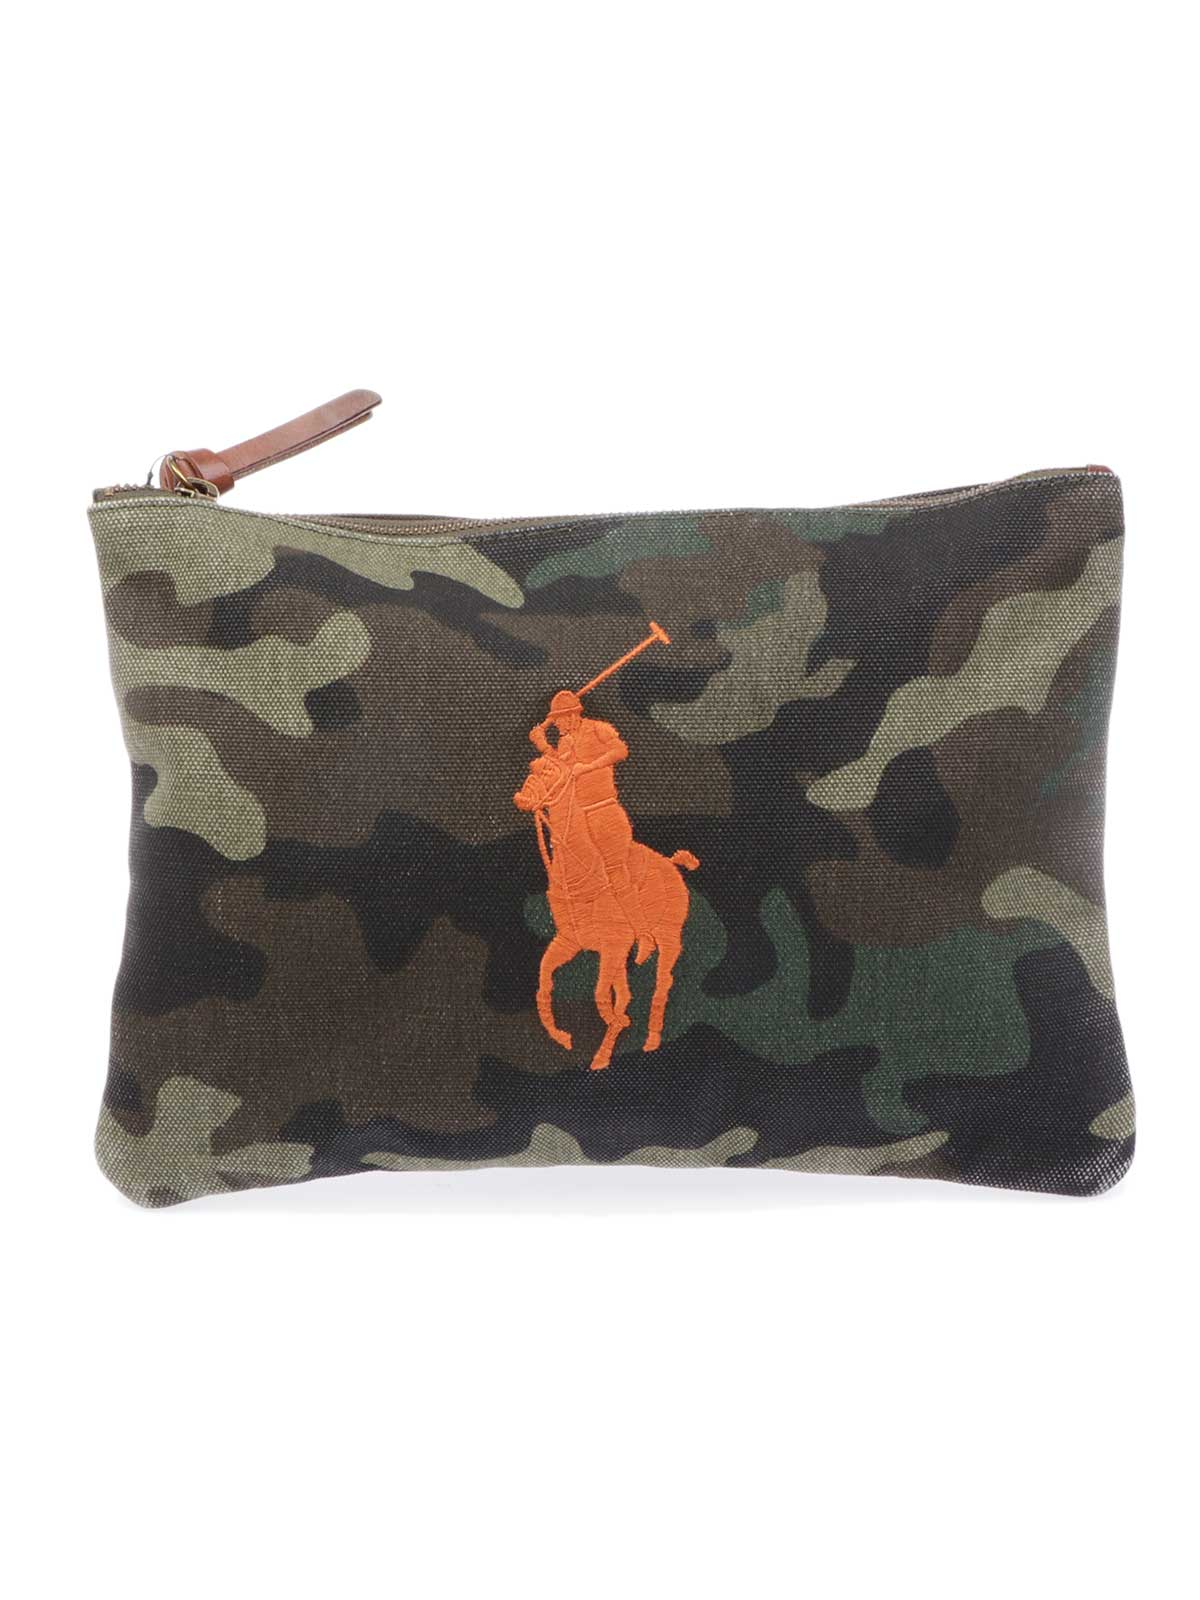 Picture of POLO RALPH LAUREN | Men's Camouflage Clutch Bag